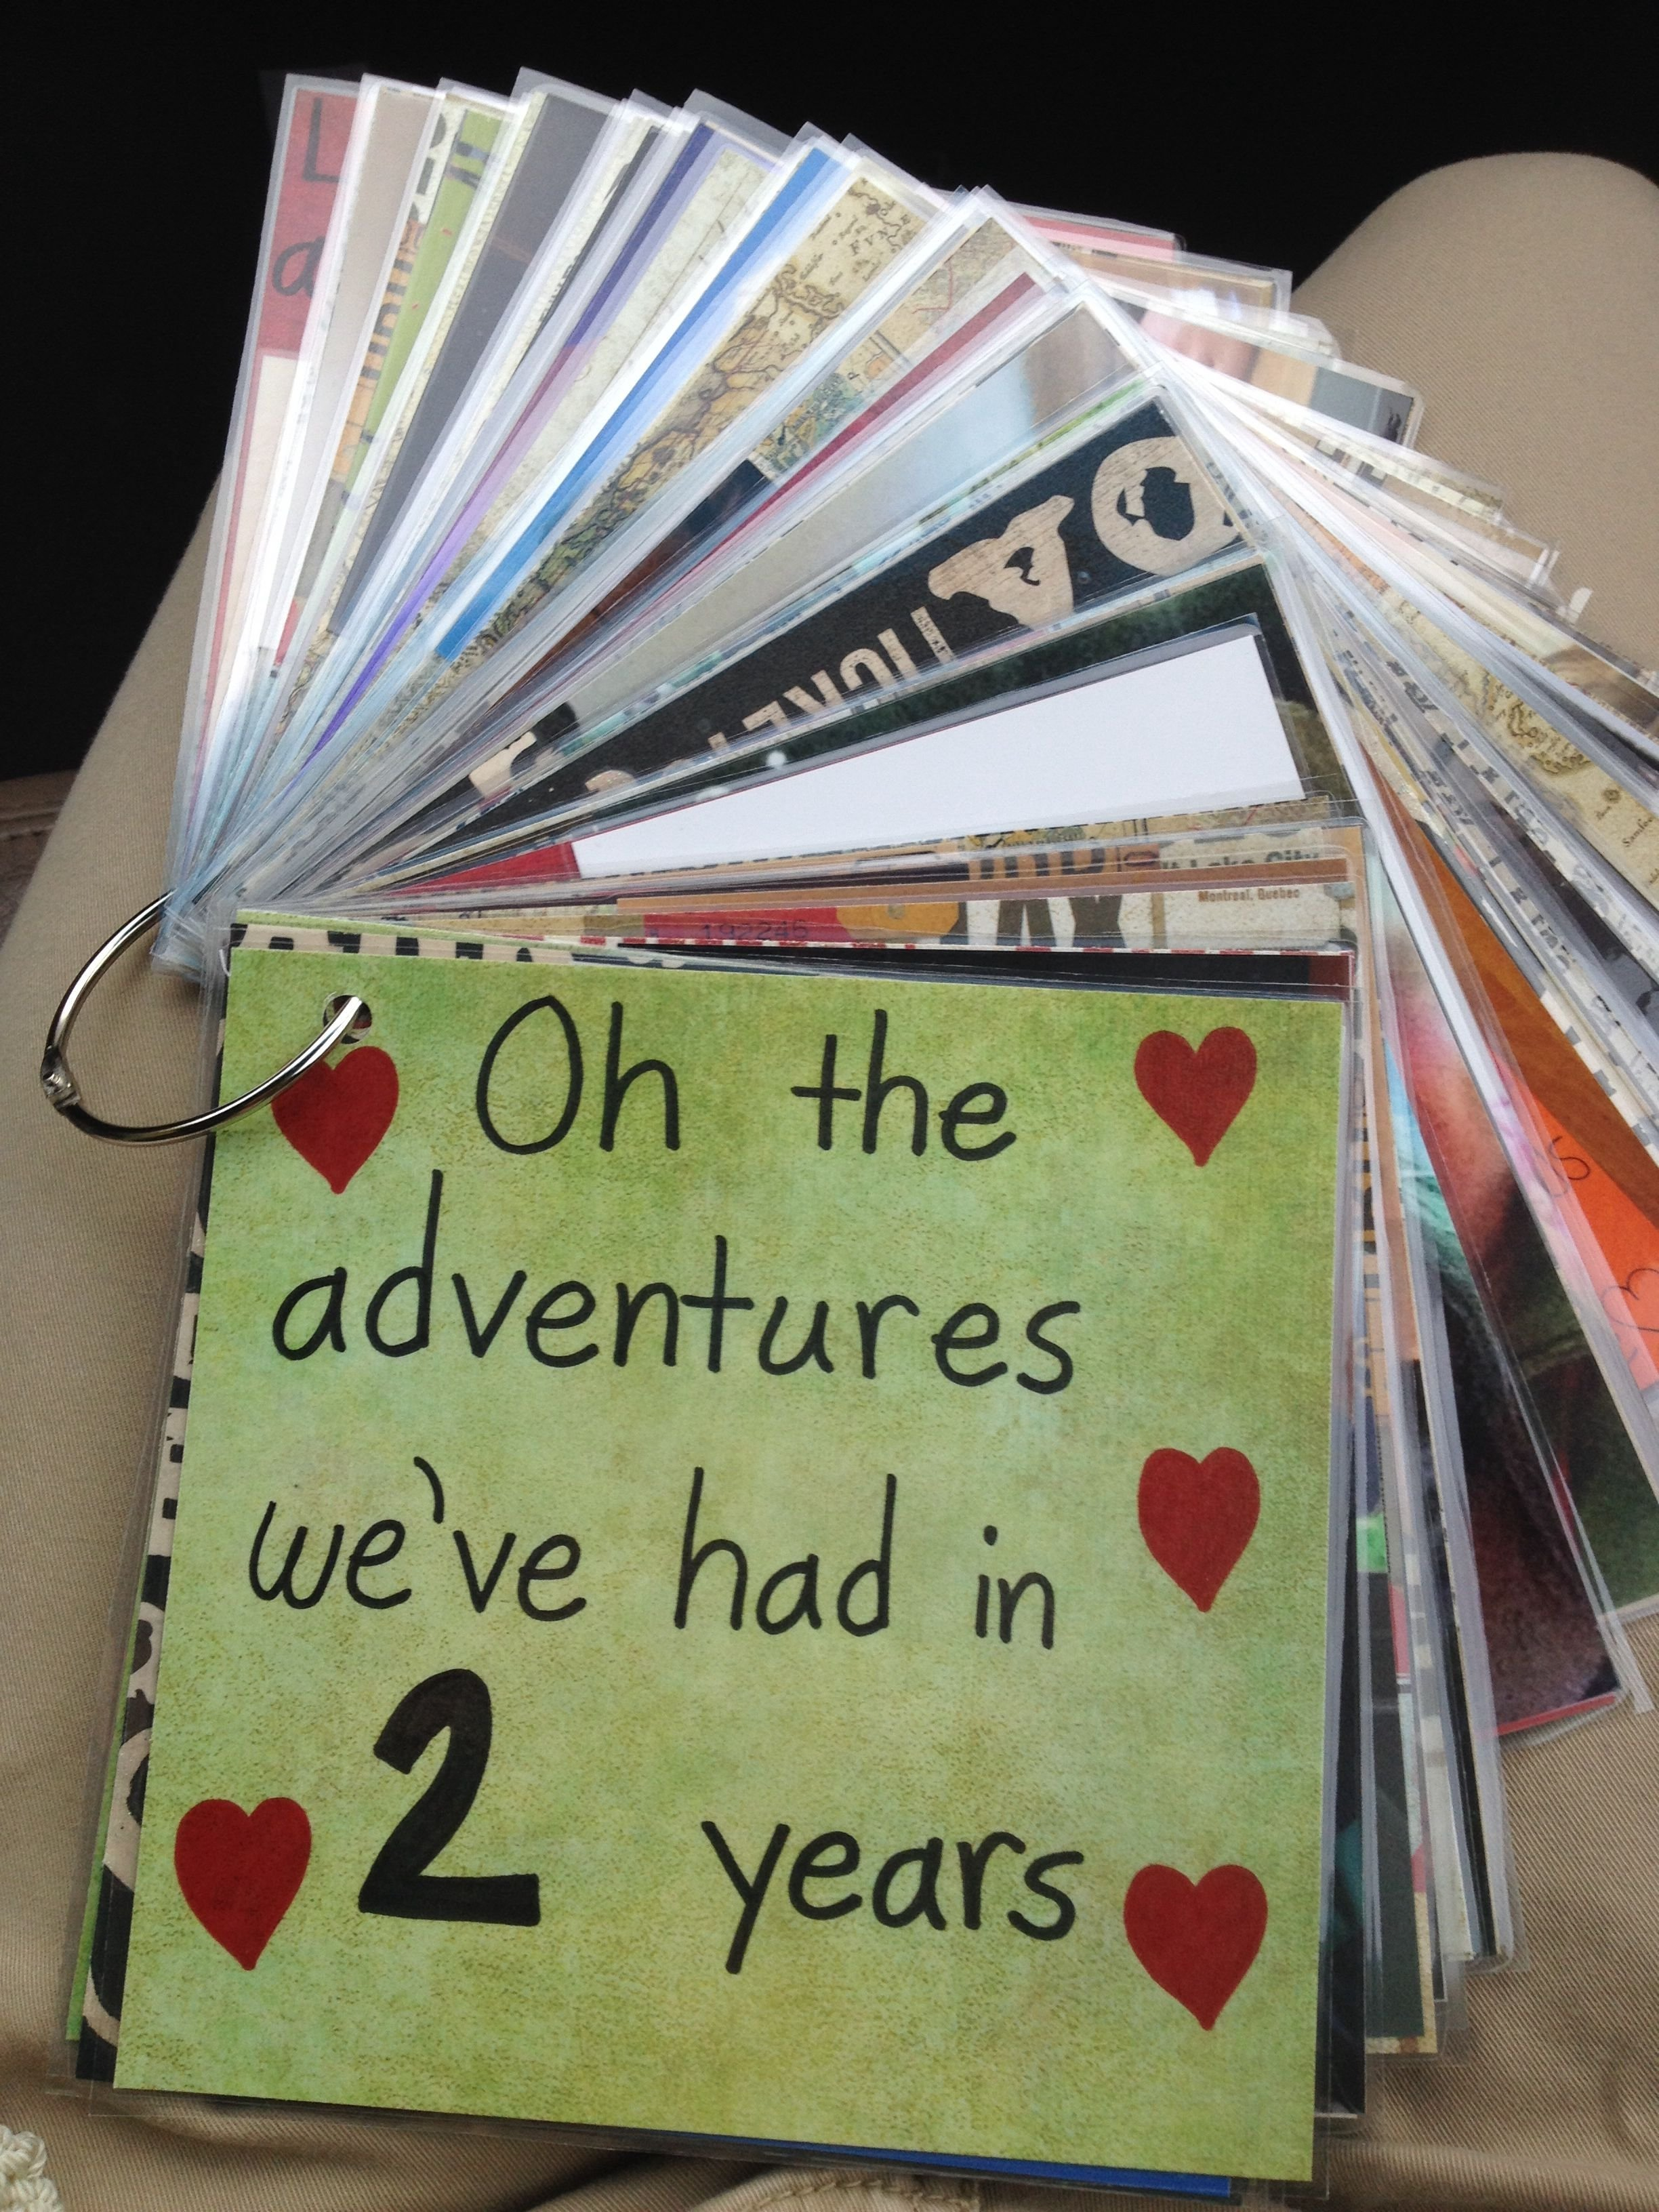 10 Wonderful Fun Anniversary Ideas For Him 50 awesome valentines gifts for him captions boyfriends and 4 2021